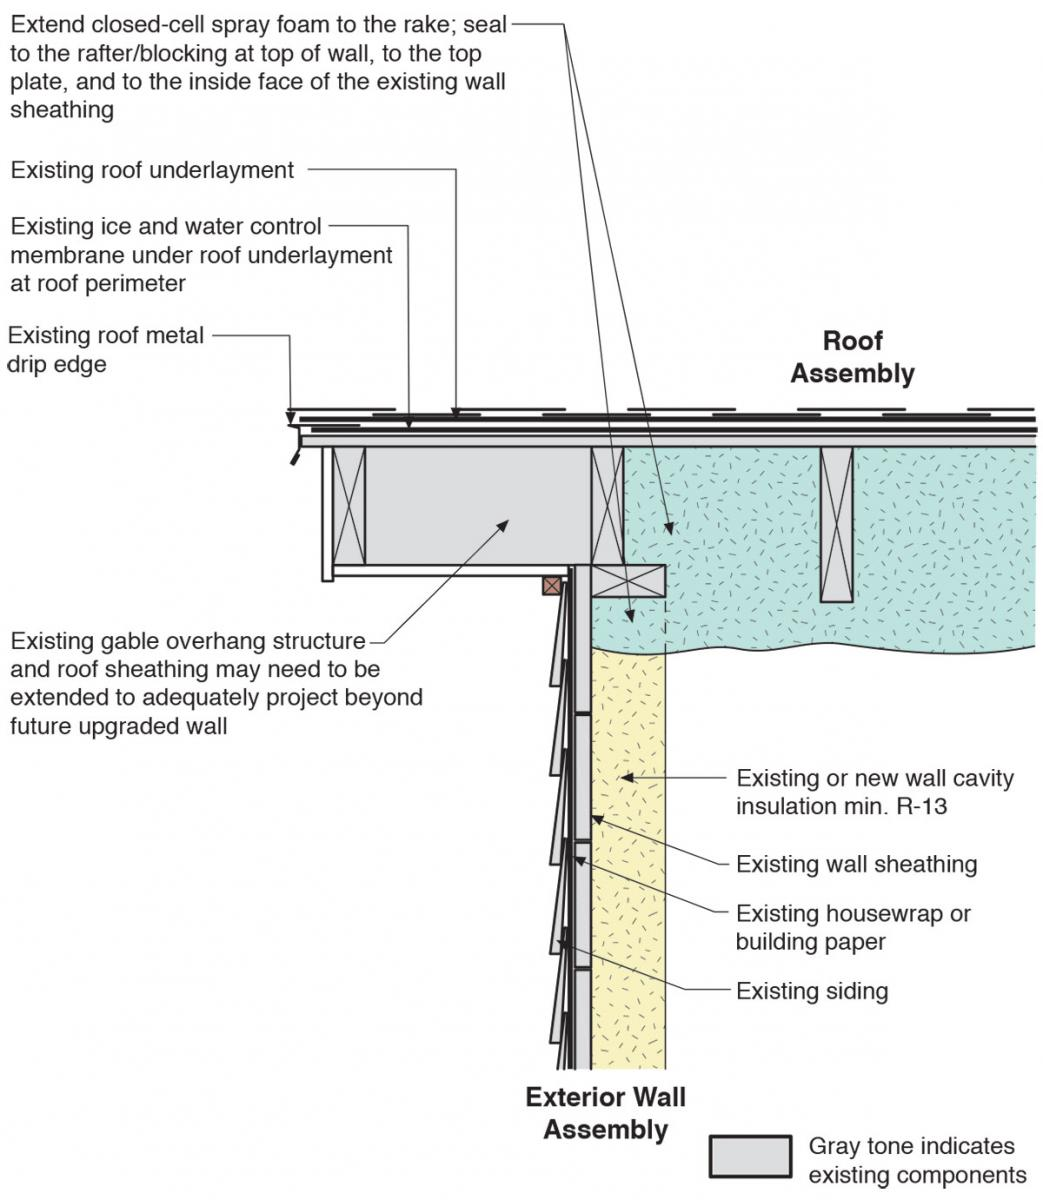 Roof Attic To Exterior Wall Air Control Upgrade